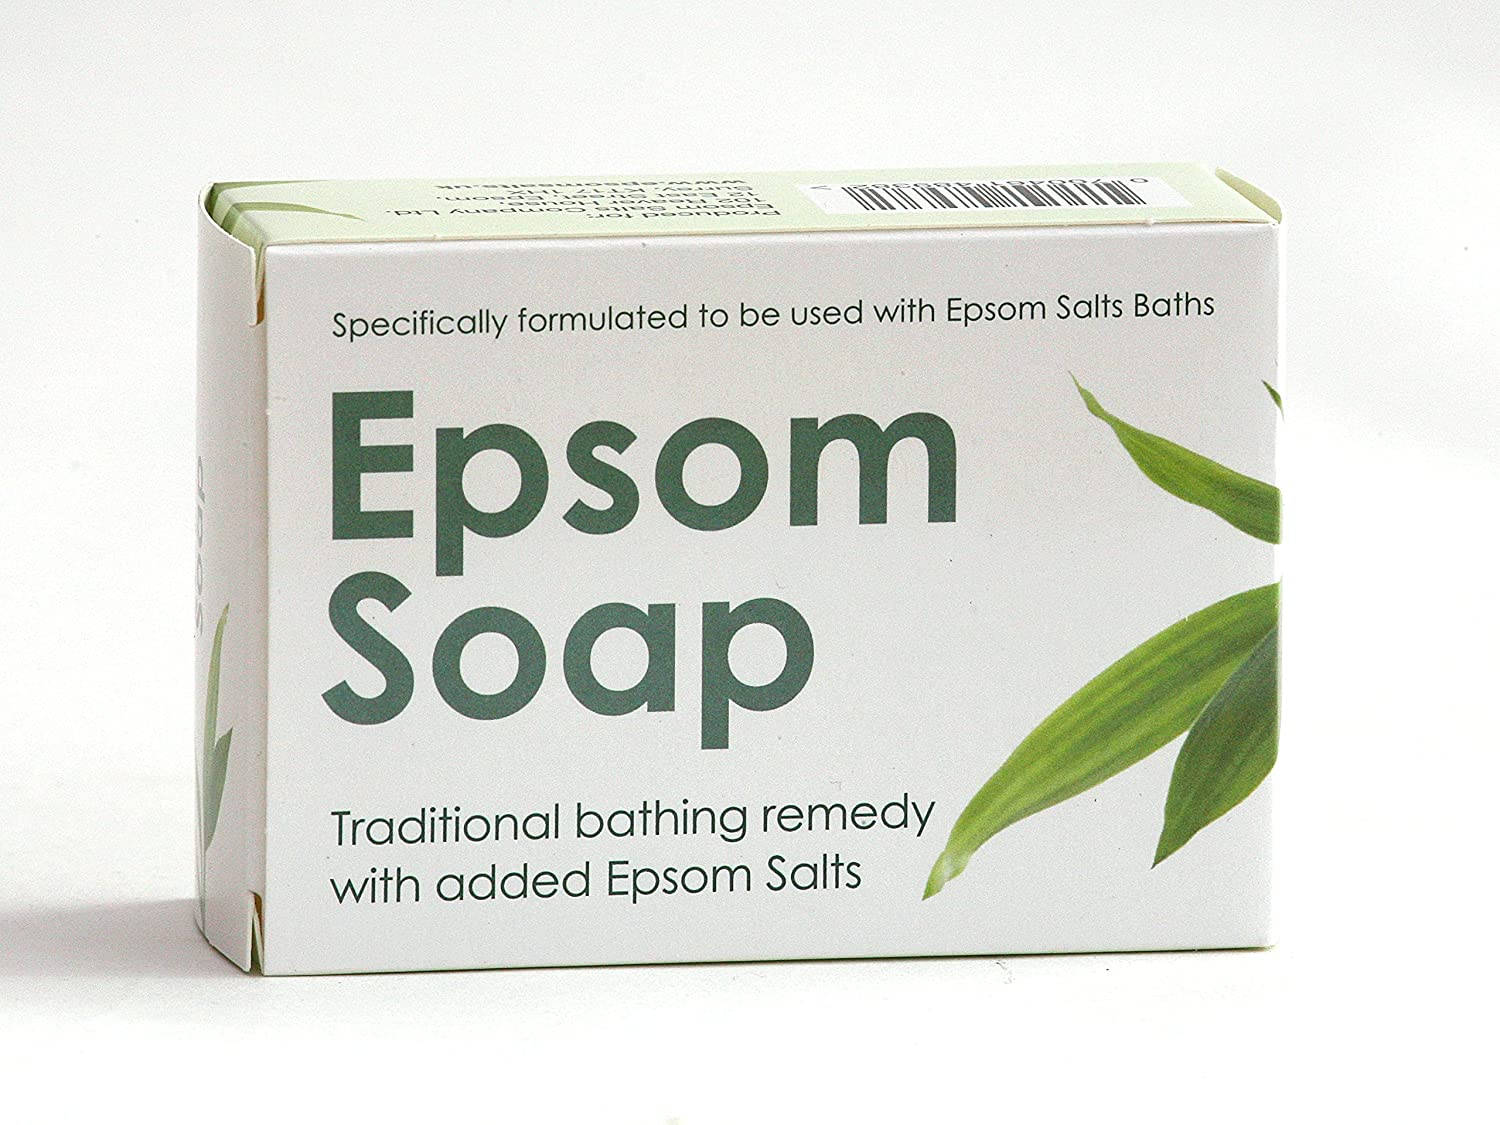 4 x Epsom Soap - Free Next Day Delivery Epsom Salts Co.